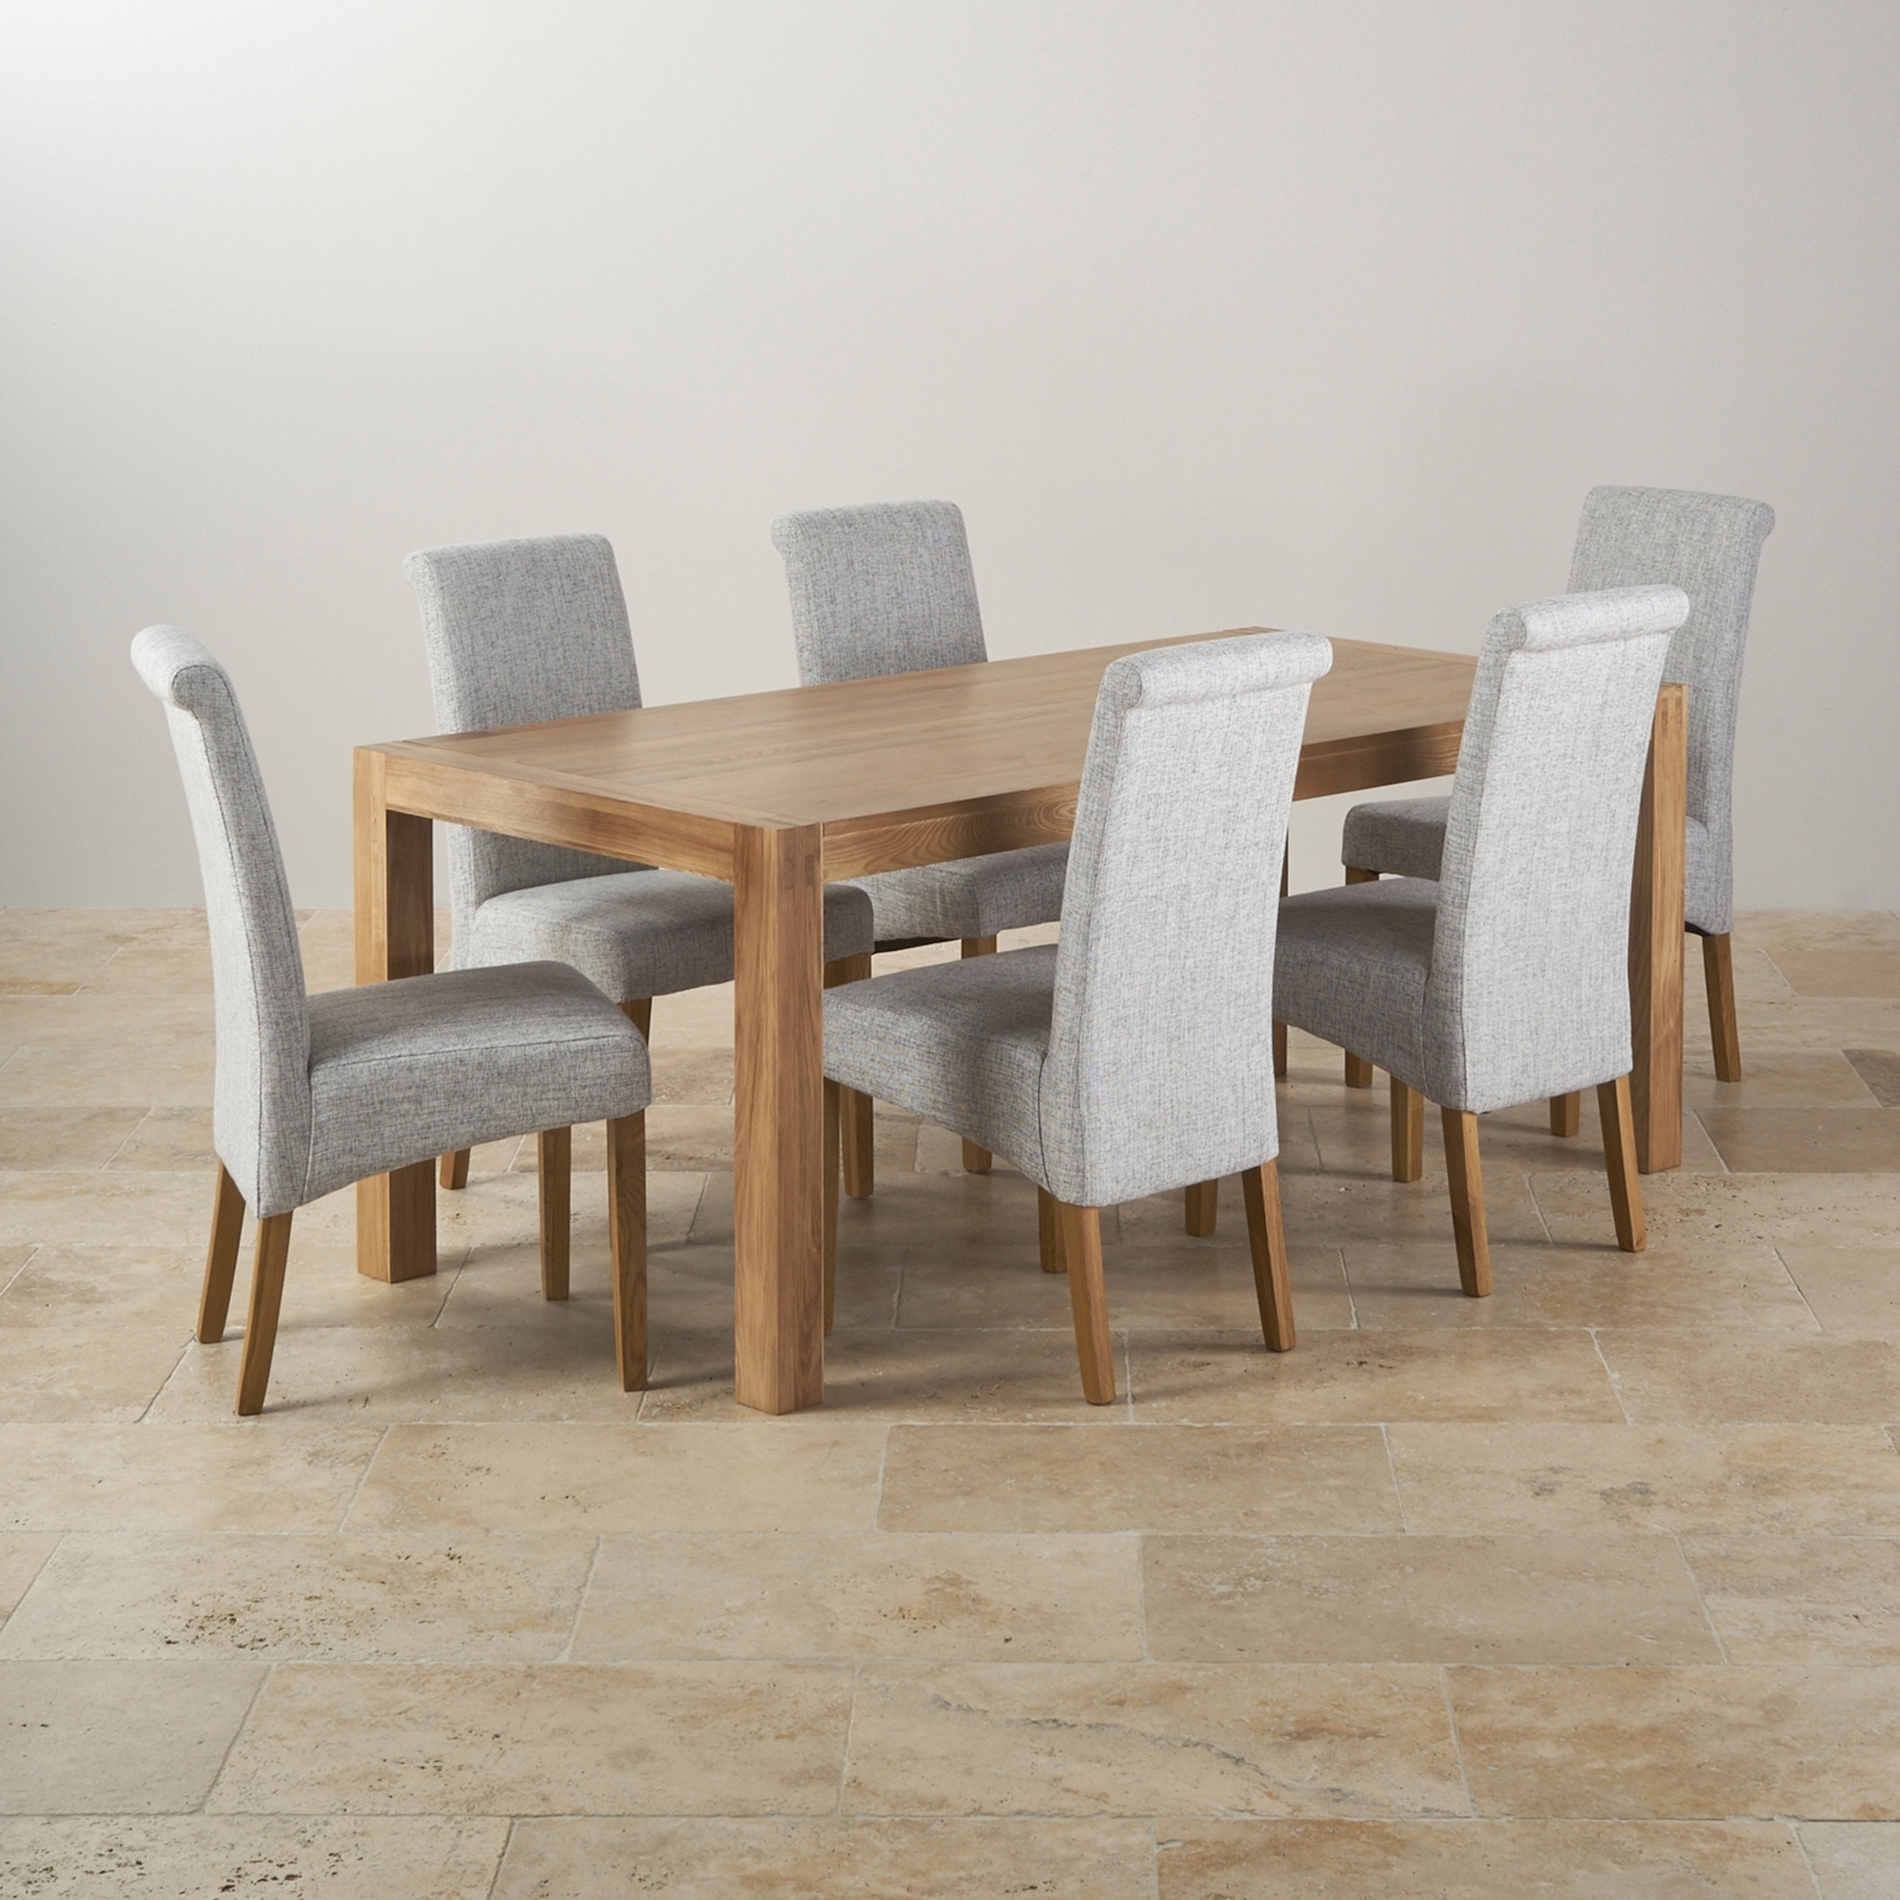 Laurent 5 Piece Round Dining Sets With Wood Chairs With Regard To Well Liked Alto Solid Oak 6Ft Dining Table With 6 Grey Fabric Chairs Ghost (View 23 of 25)